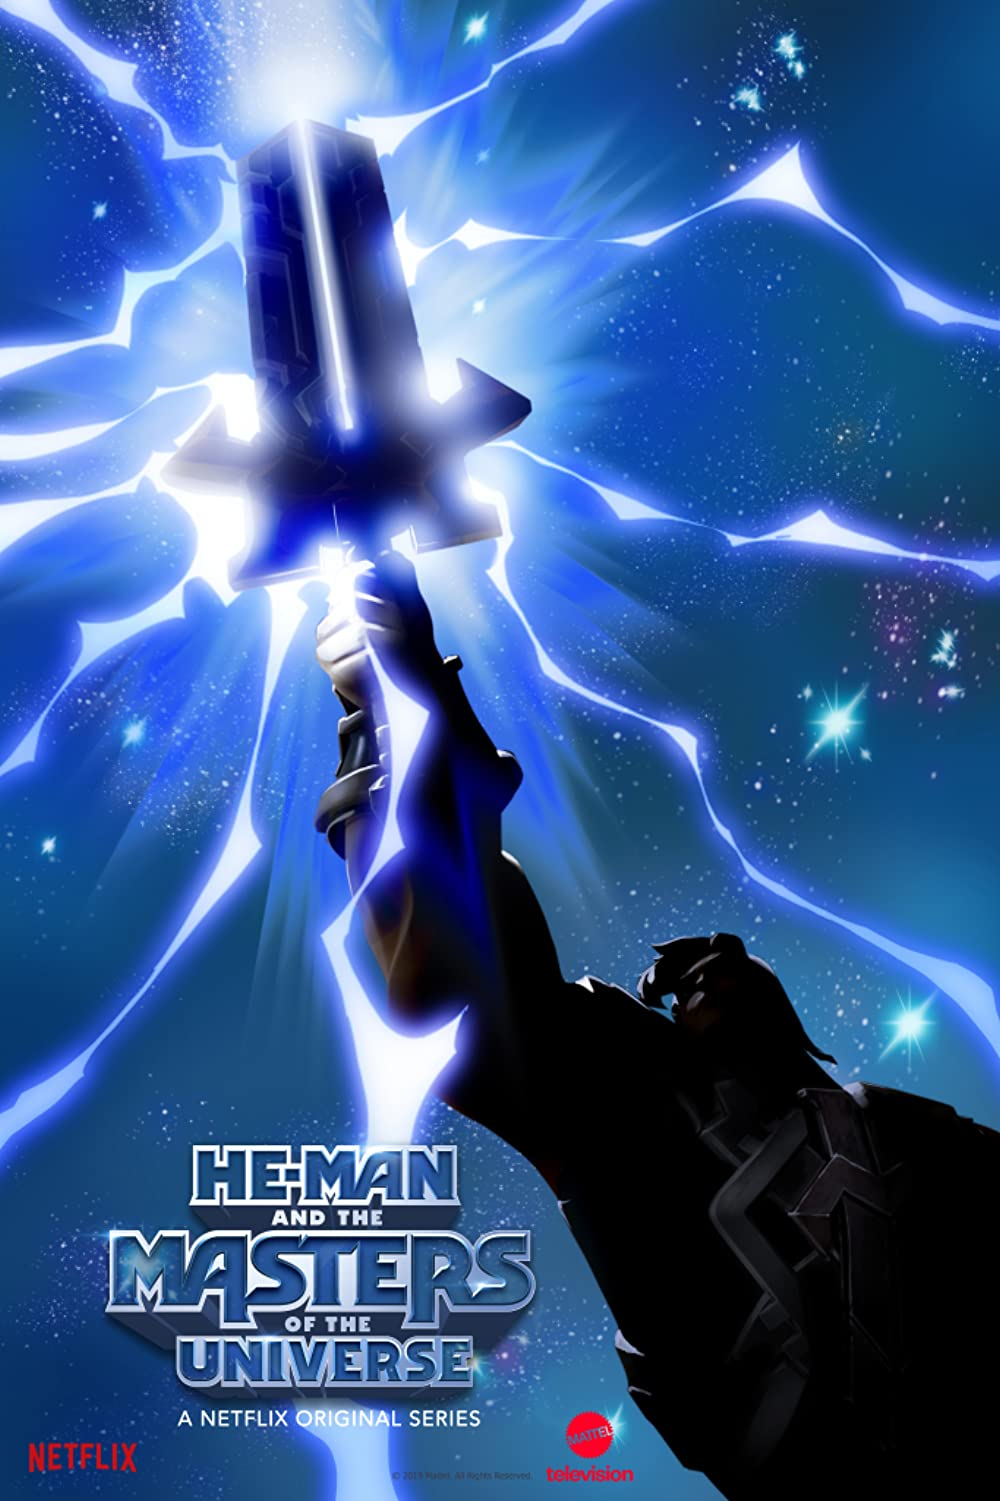 He-Man and the Masters of the Universe (TV Series 2021– ) - IMDb